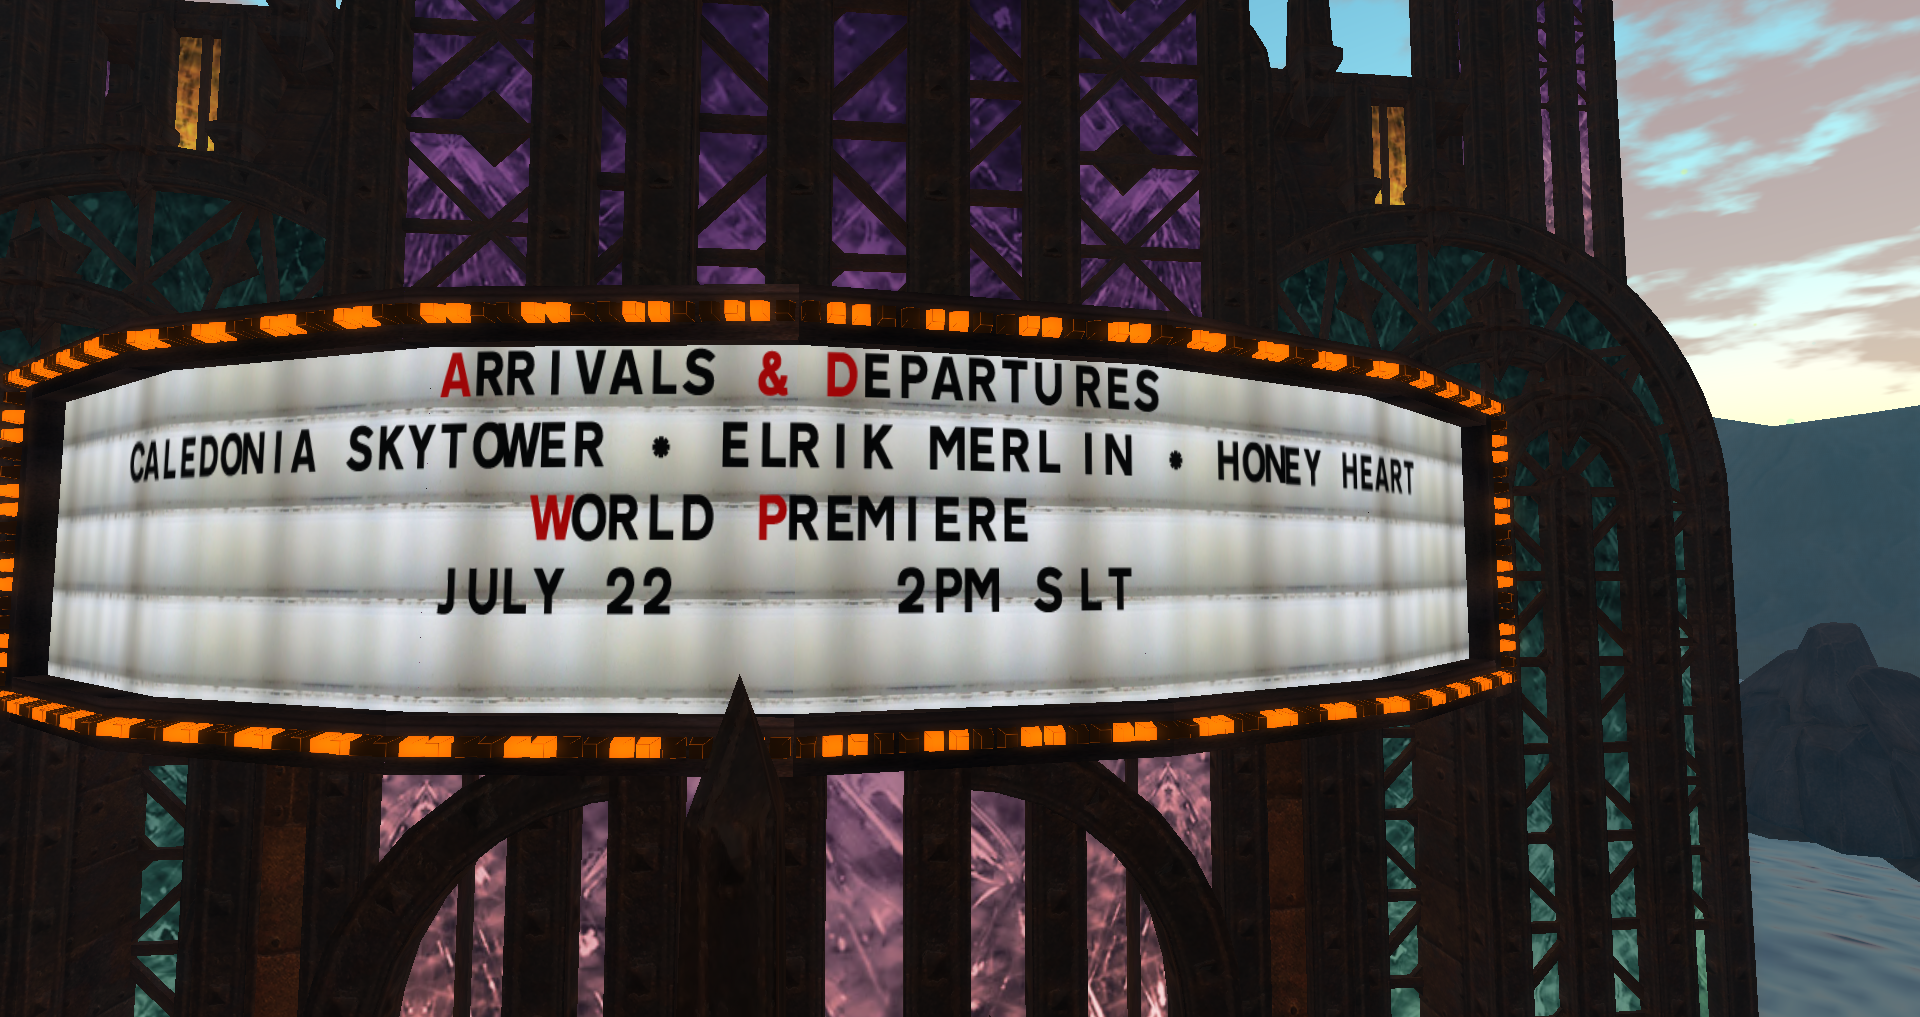 preparing-for-the-arrivals–departures-premiere-on-july-22-2018_41599054770_o